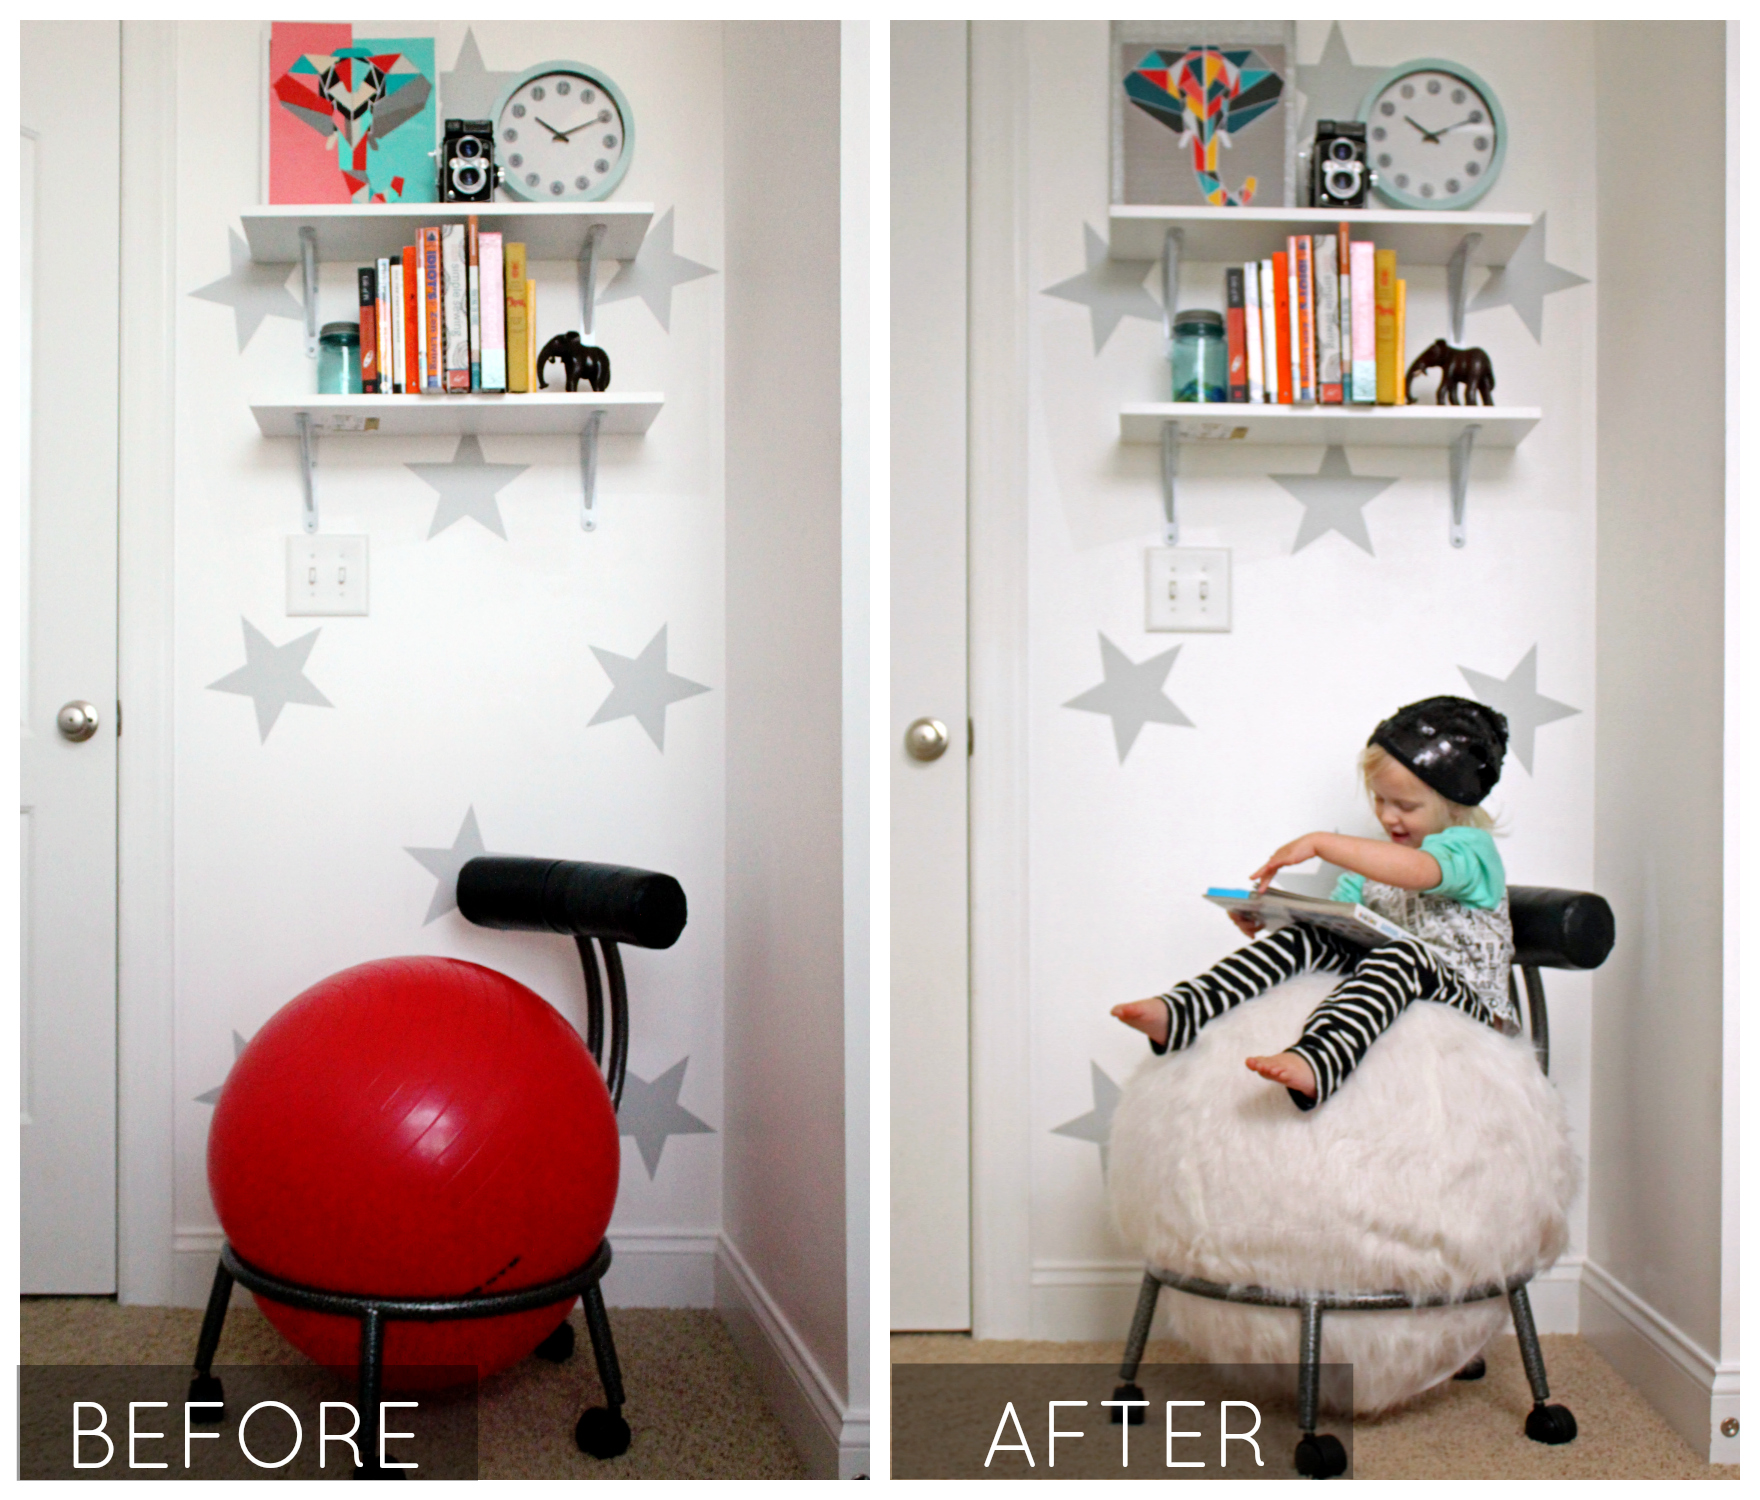 Before and after ball chair